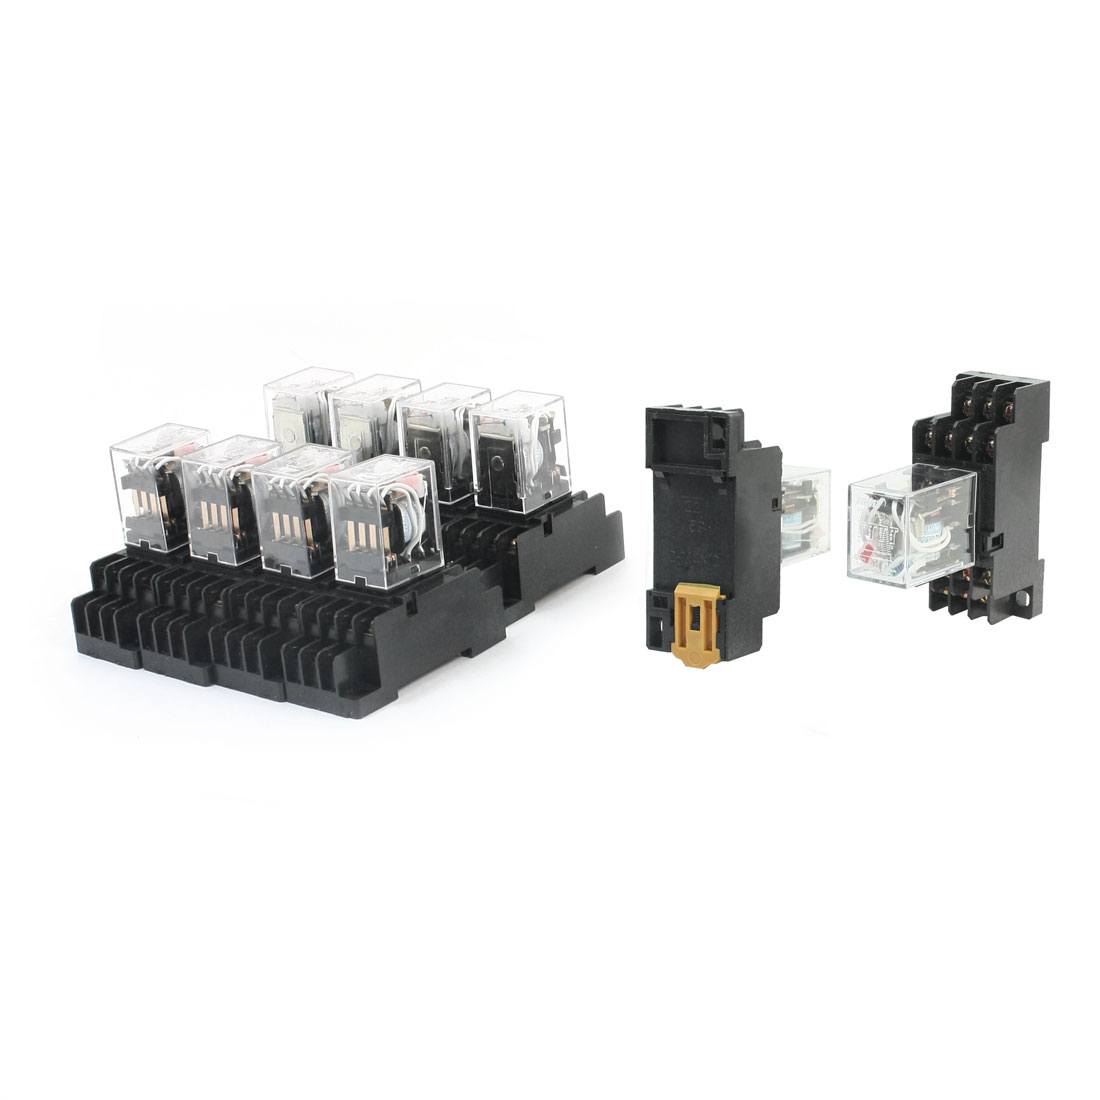 10Pcs HH54PL AC 110V Coil Voltage 35mm DIN Rail Mounting 4PDT 4NO 4NC Pluggable in Type Power Relay HH54PL w w Socket Base